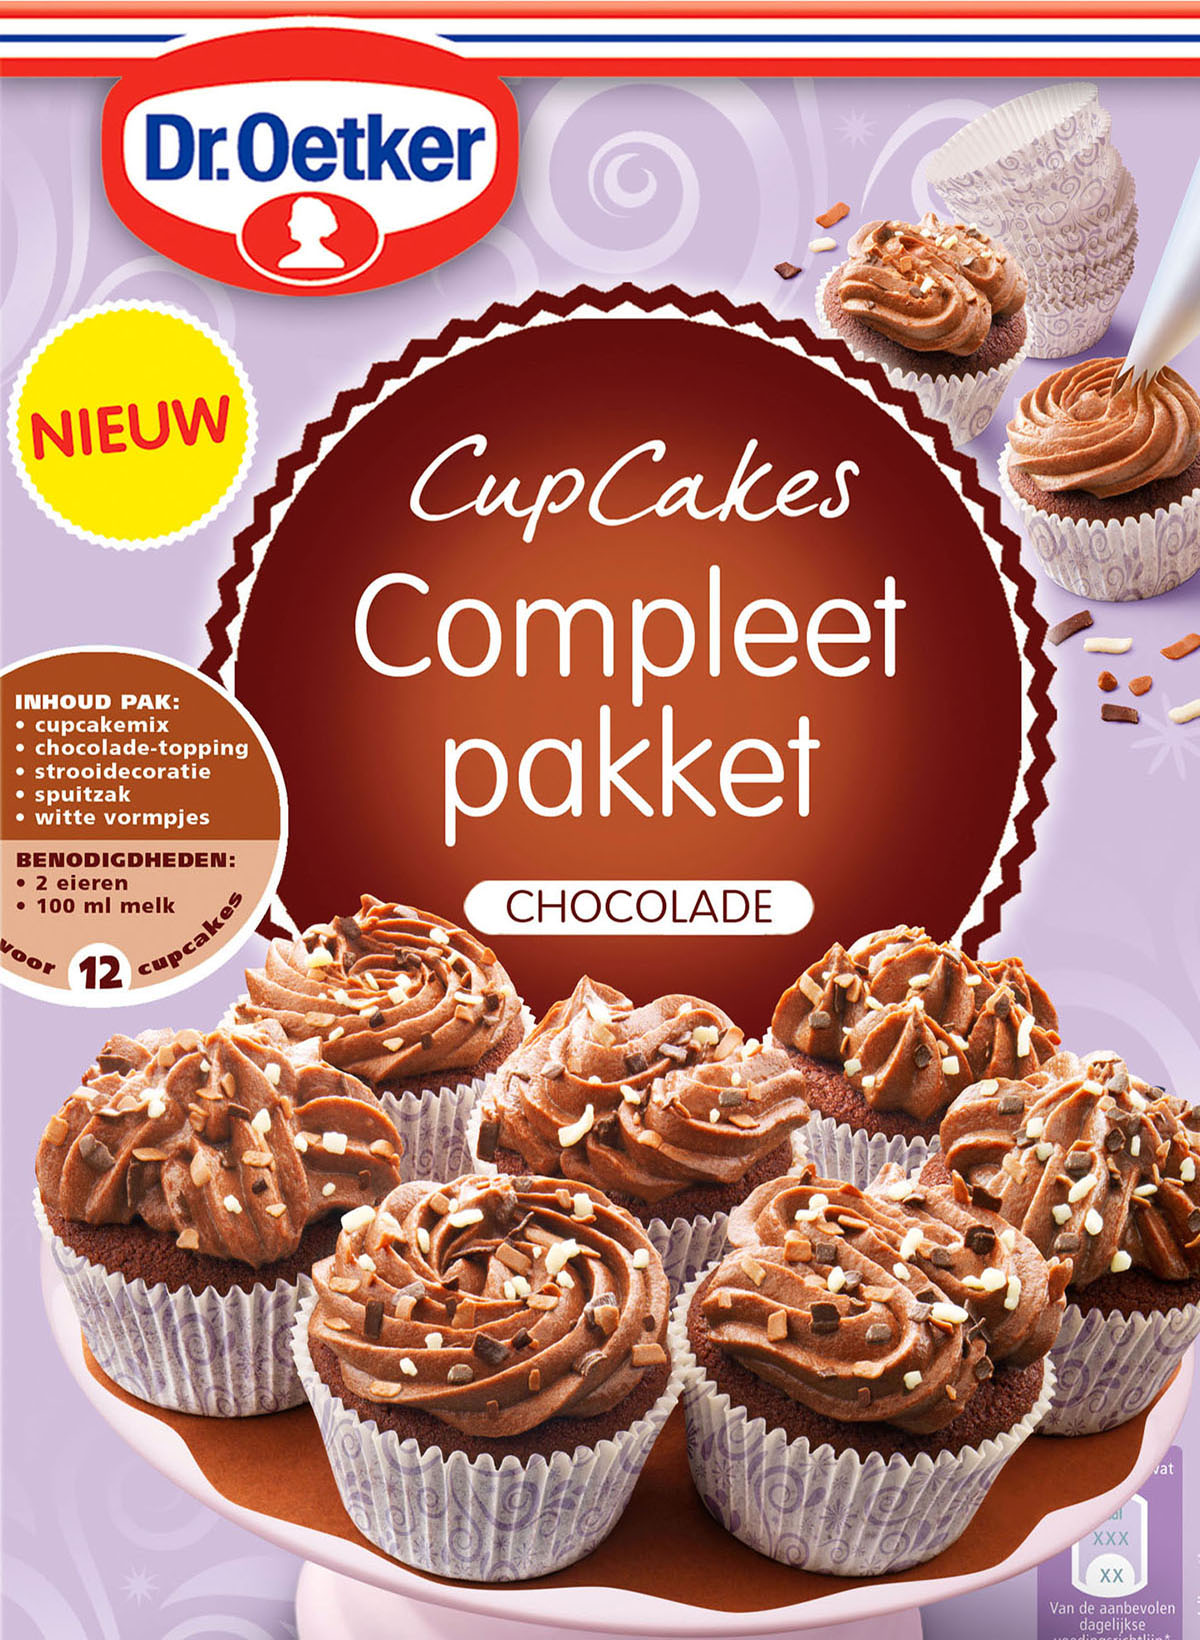 Packaging photography of Dr.Oetker's chocolate cupcakes made by Studio_m Photography Amsterdam